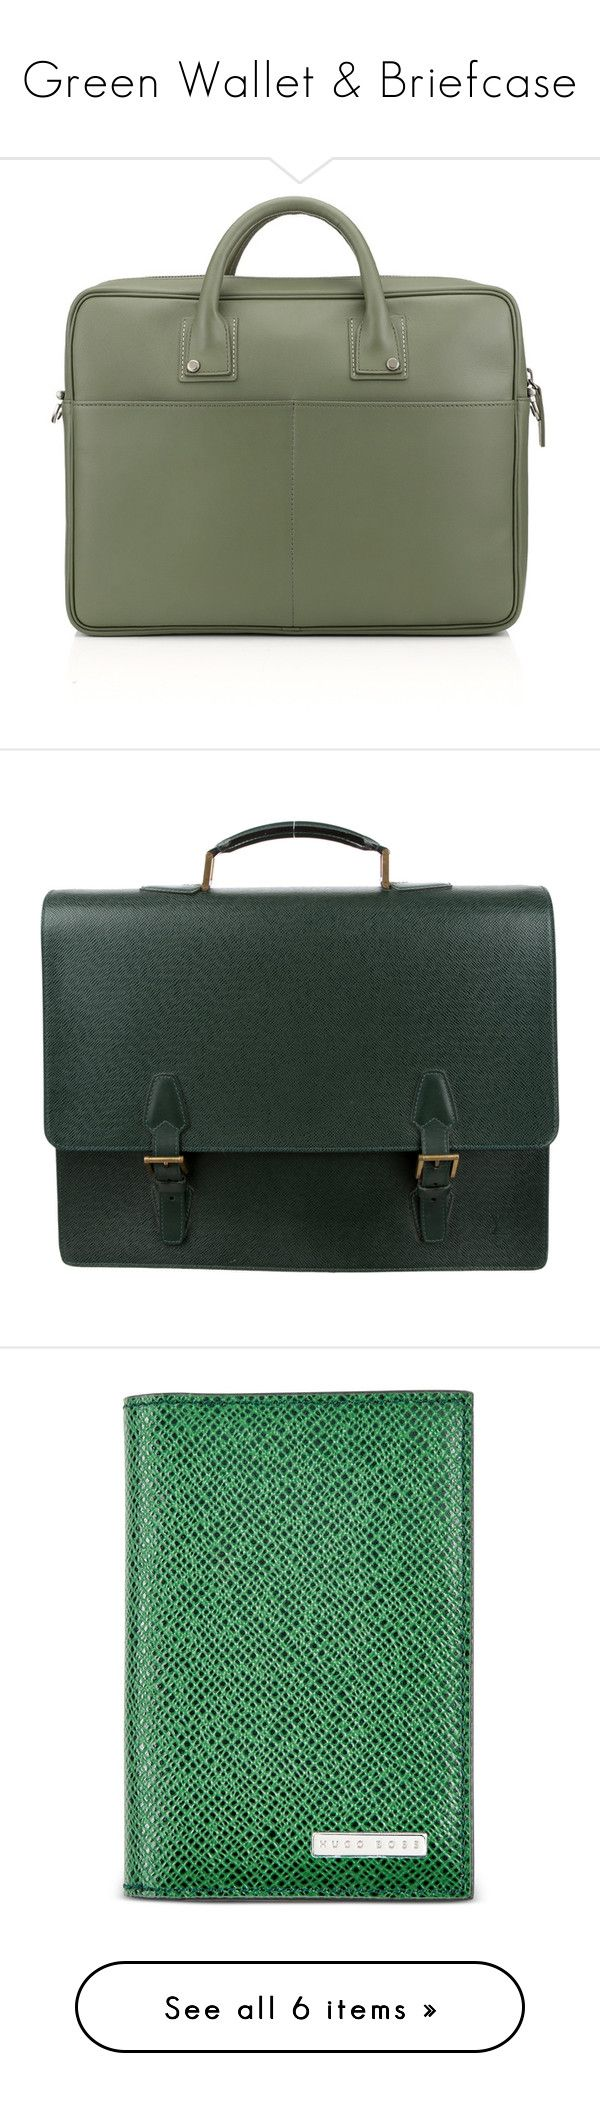 """""""Green Wallet & Briefcase"""" by eternalfeatherfilm on Polyvore featuring men's fashion, men's bags, men's briefcases, green, louis vuitton mens briefcase, mens briefcase, men's wallets, bi fold mens wallet, mens leather bifold wallet and mens leather card case wallet"""